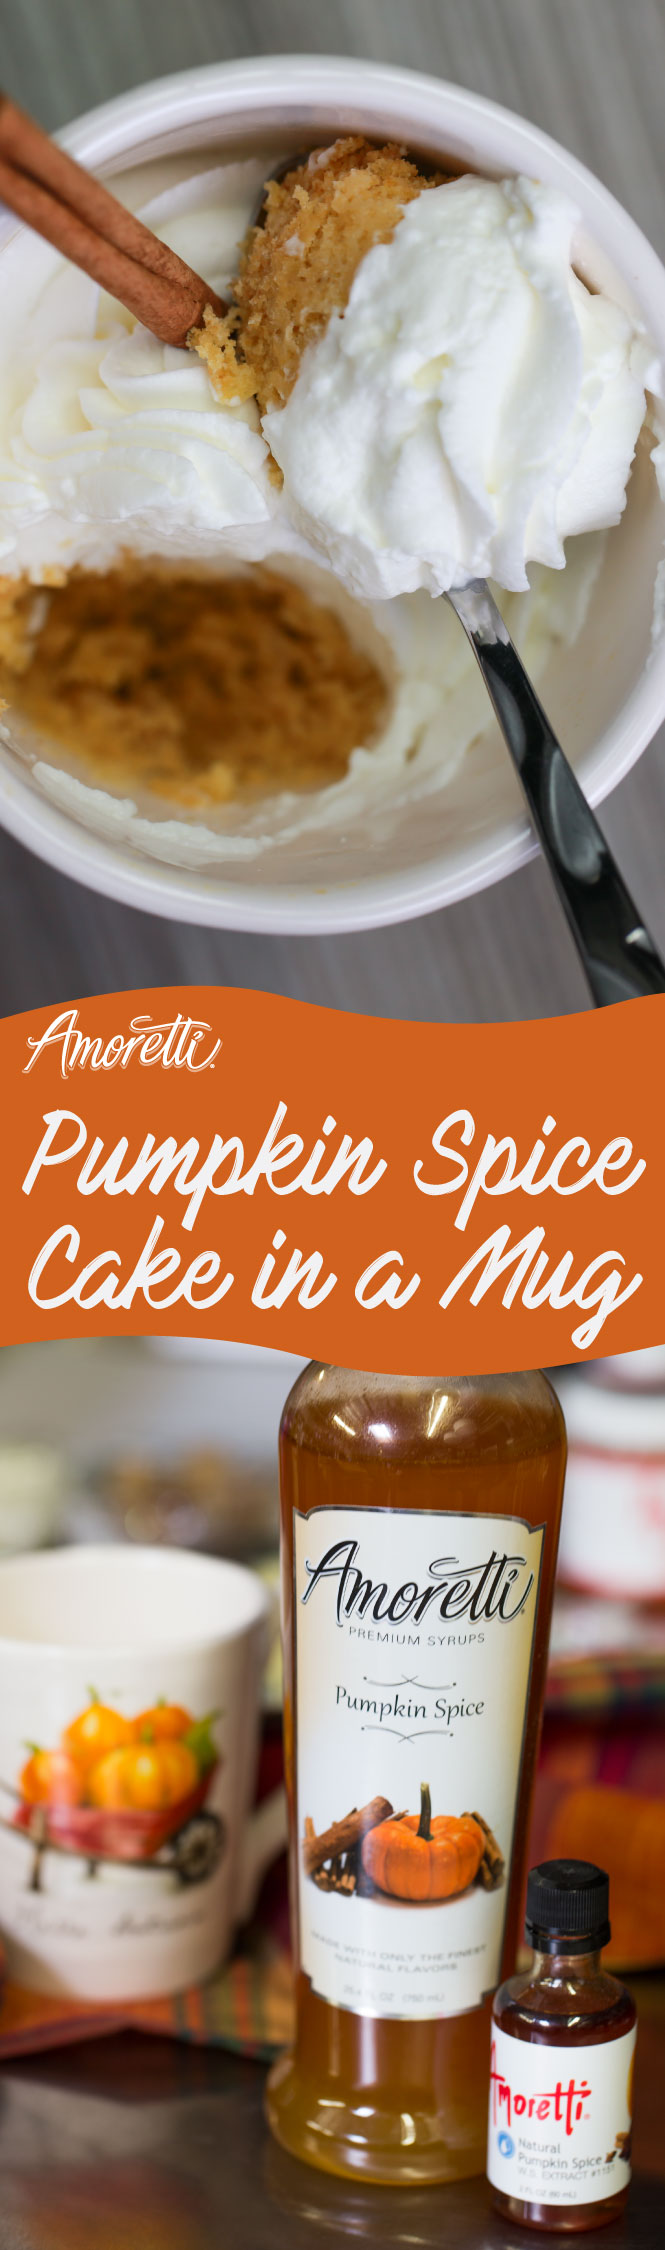 Don't want to spend too much time in the kitchen making a delicious dessert? Then try our pumpkin spice mug cake, it's a very simple recipe!